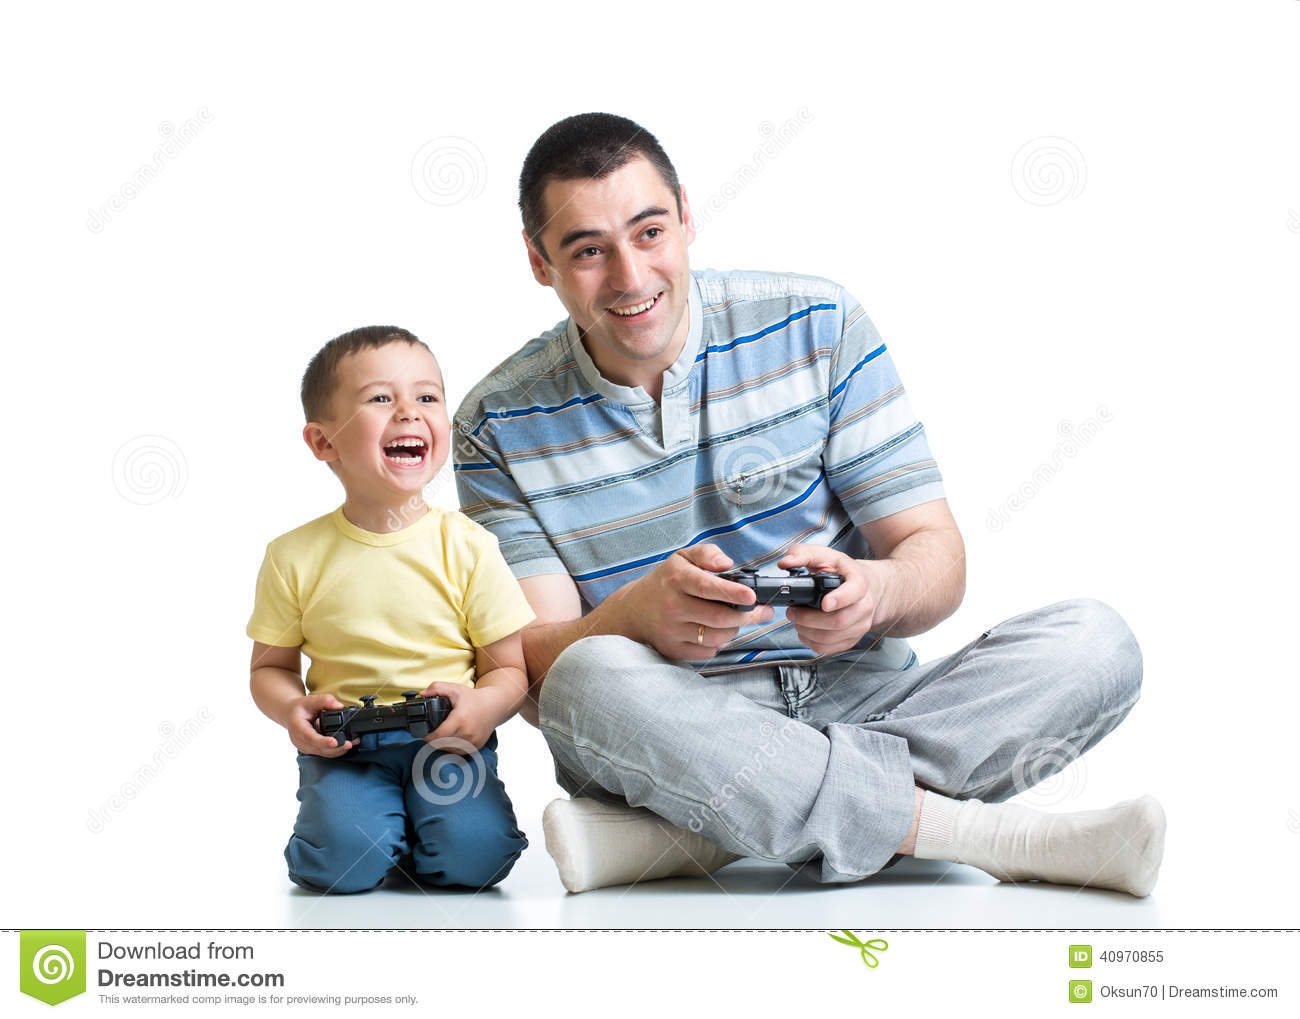 drone helicopter toy with Stock Photo Kid Boy His Dad Playing Playstation Together Play Image40970855 on Dji Officially Released Mavic Pro Rc Drone as well Gas powered drones and a manned multirotor likewise Stock Photo Kid Boy His Dad Playing Playstation Together Play Image40970855 furthermore drohnen Kaufen furthermore 4014.